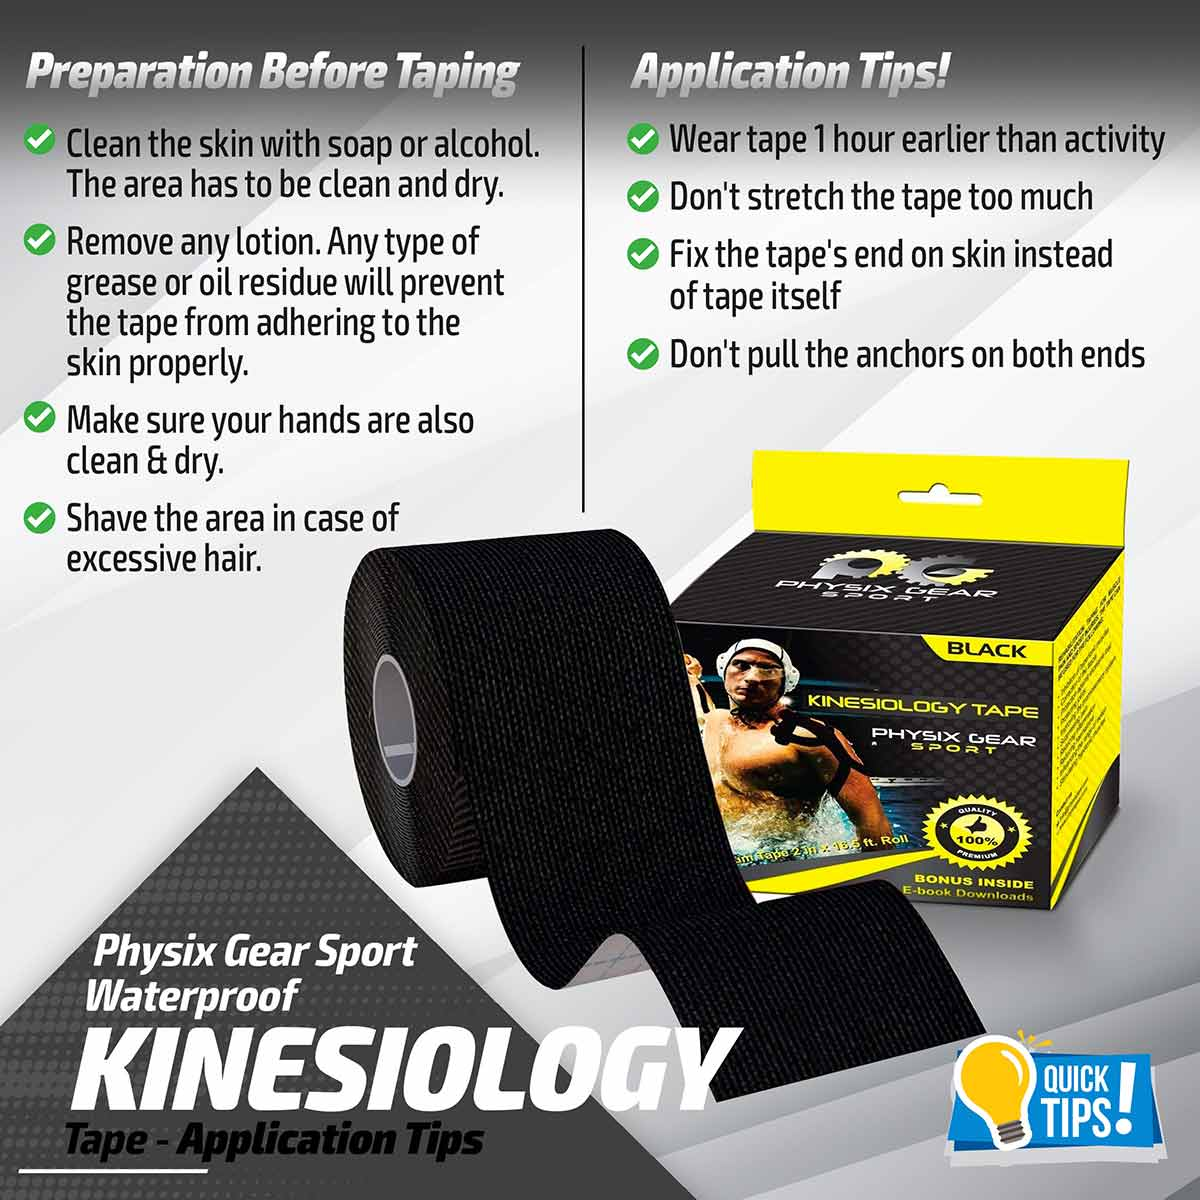 Kinesiology Tape - Black-Physix Gear Sport